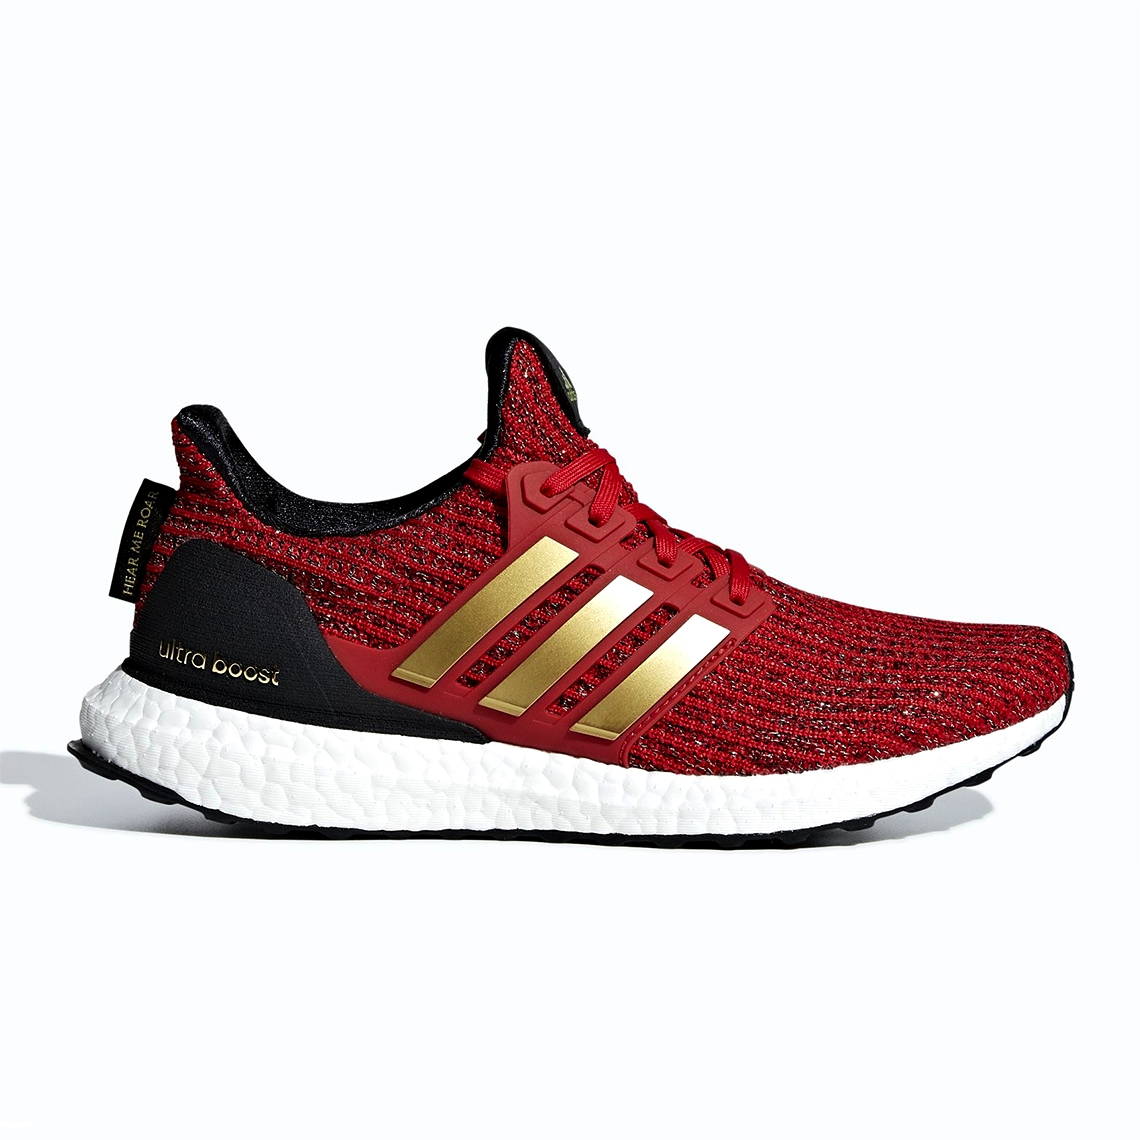 Game Of Thrones x adidas UltraBOOST «House Lannister»